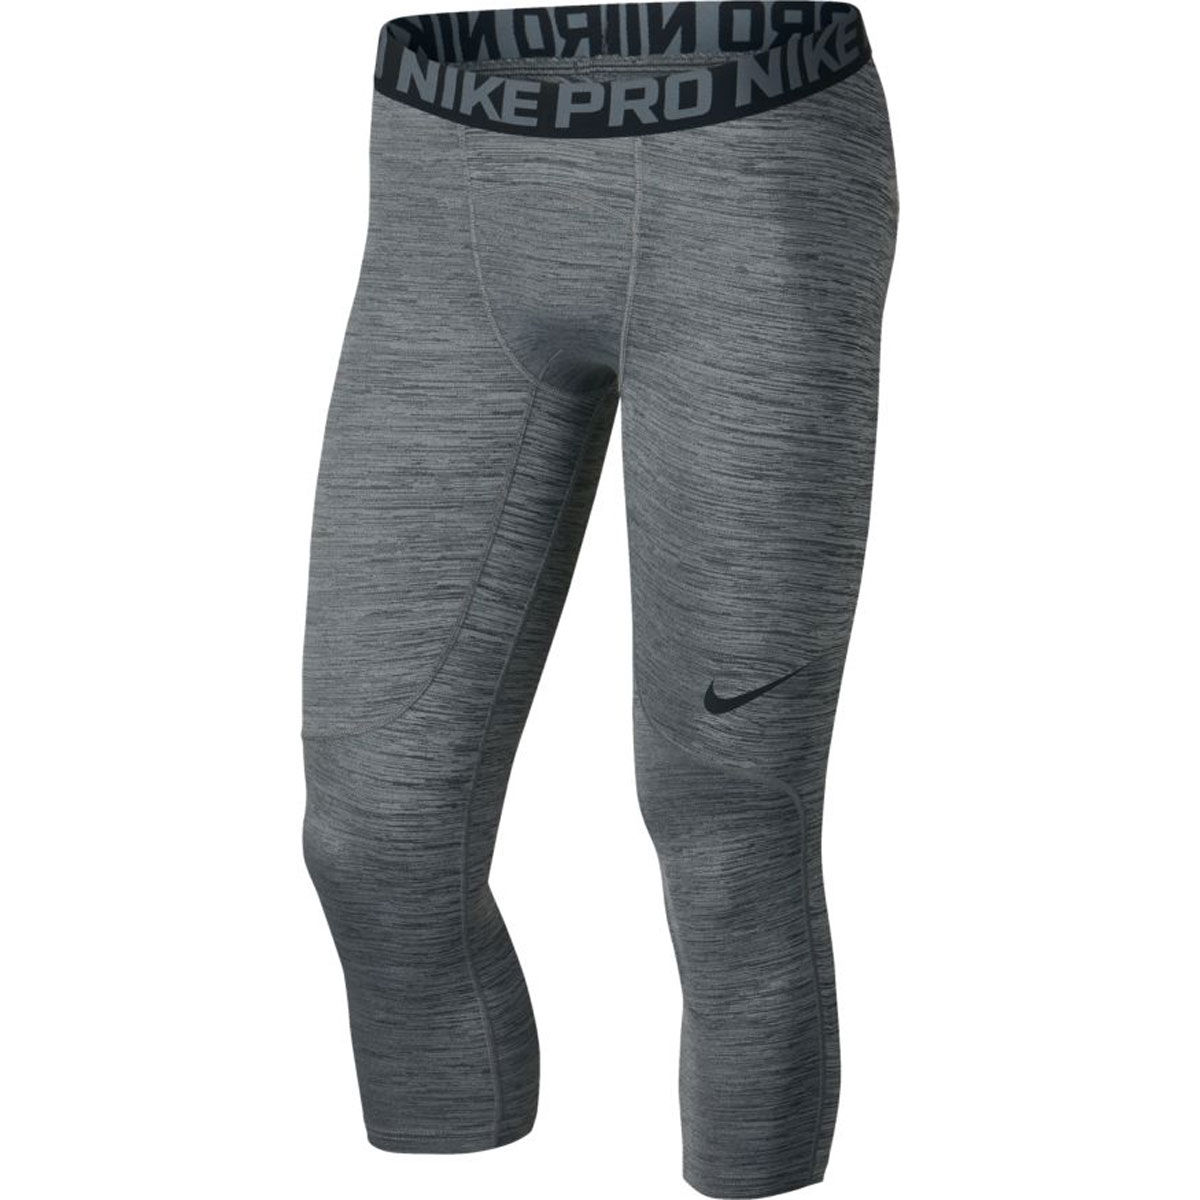 Nike Pro 3/4 Mens Tight